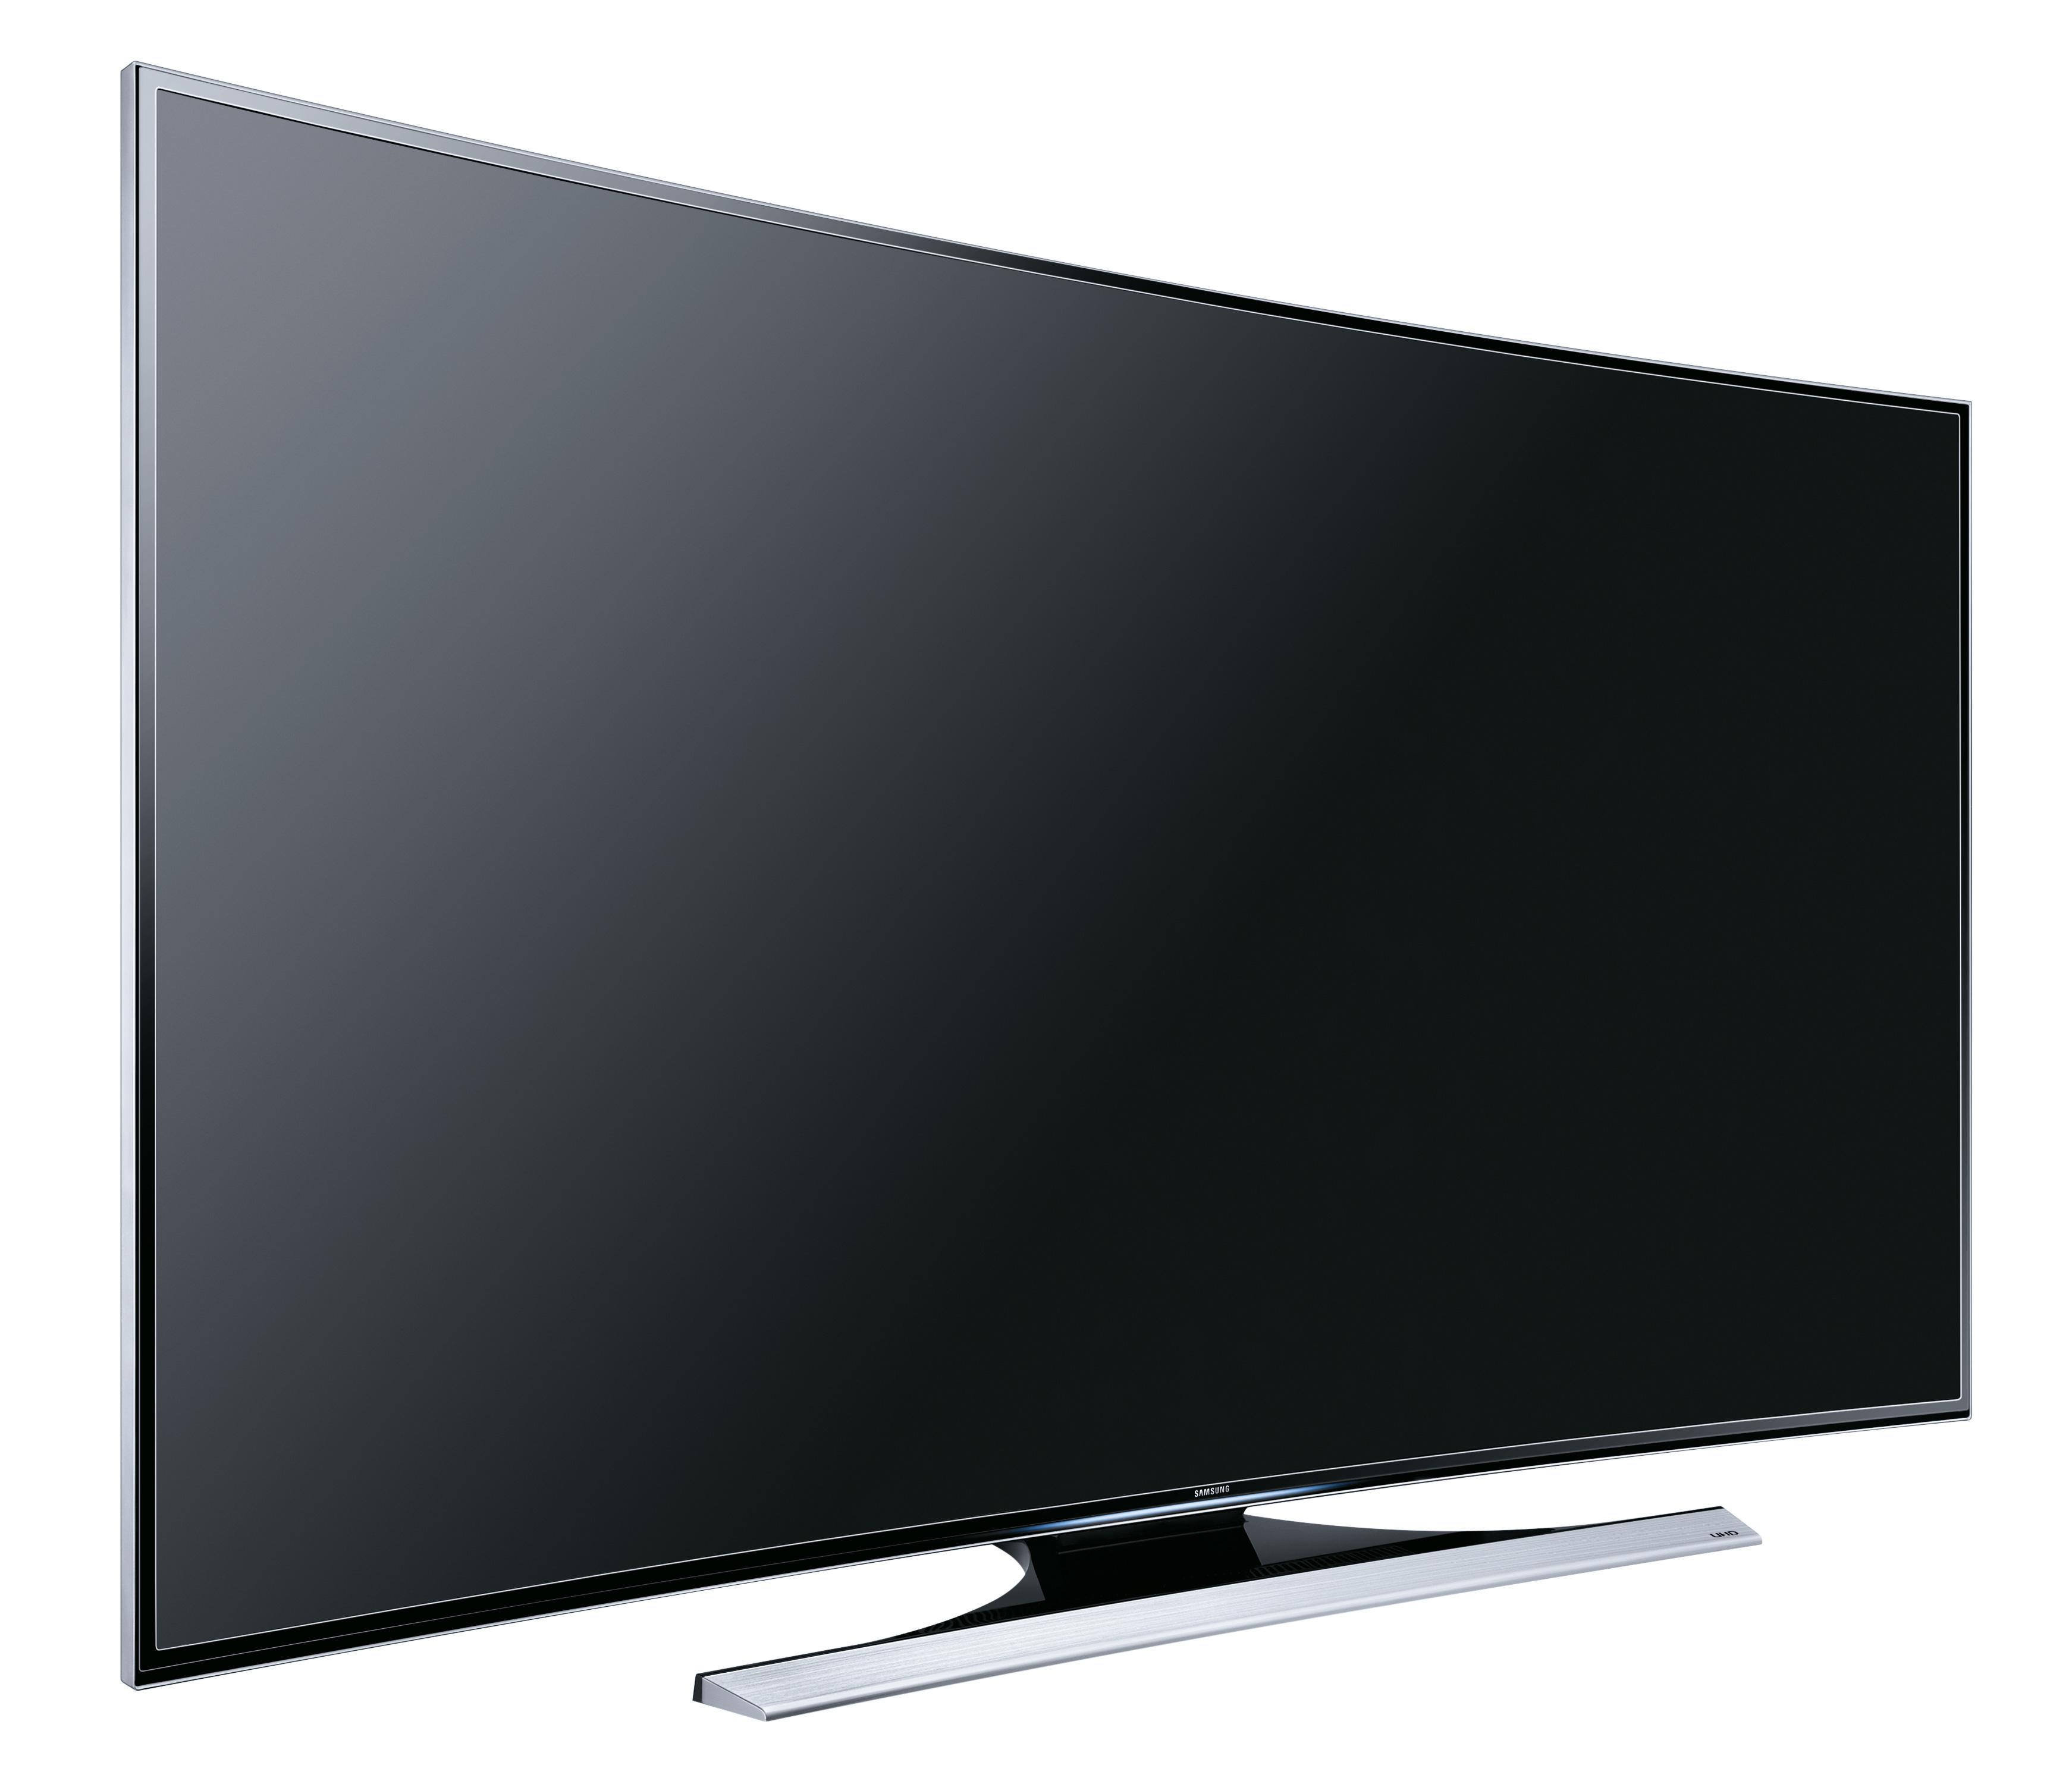 samsung launches new 55 and 65 inch curved uhd tvs sammobile sammobile. Black Bedroom Furniture Sets. Home Design Ideas